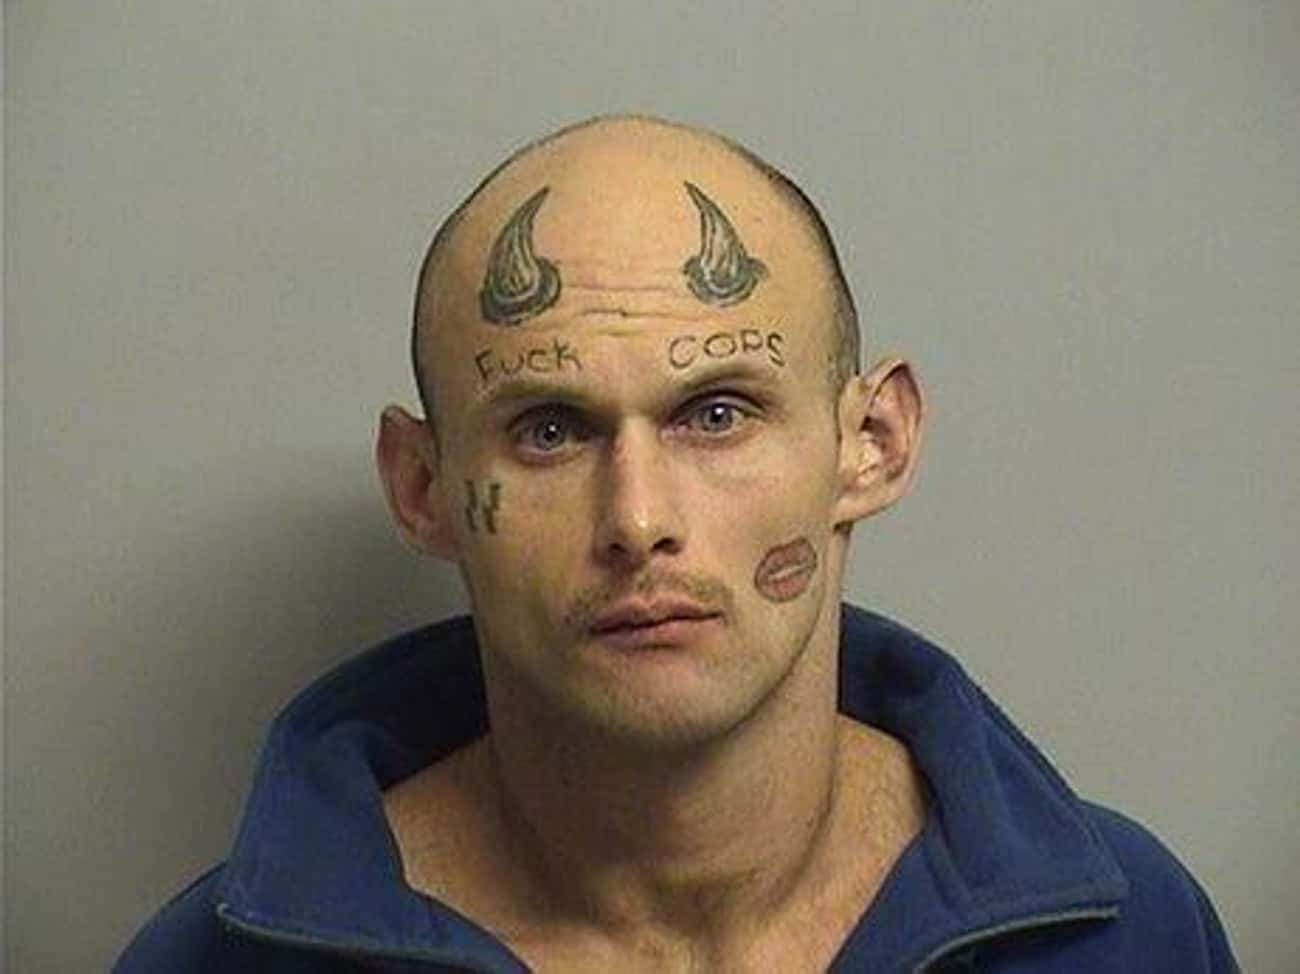 Straight Outta Common Sense is listed (or ranked) 1 on the list The Most Out-Of-Control Face Tattoos Captured By The Mugshot Camera